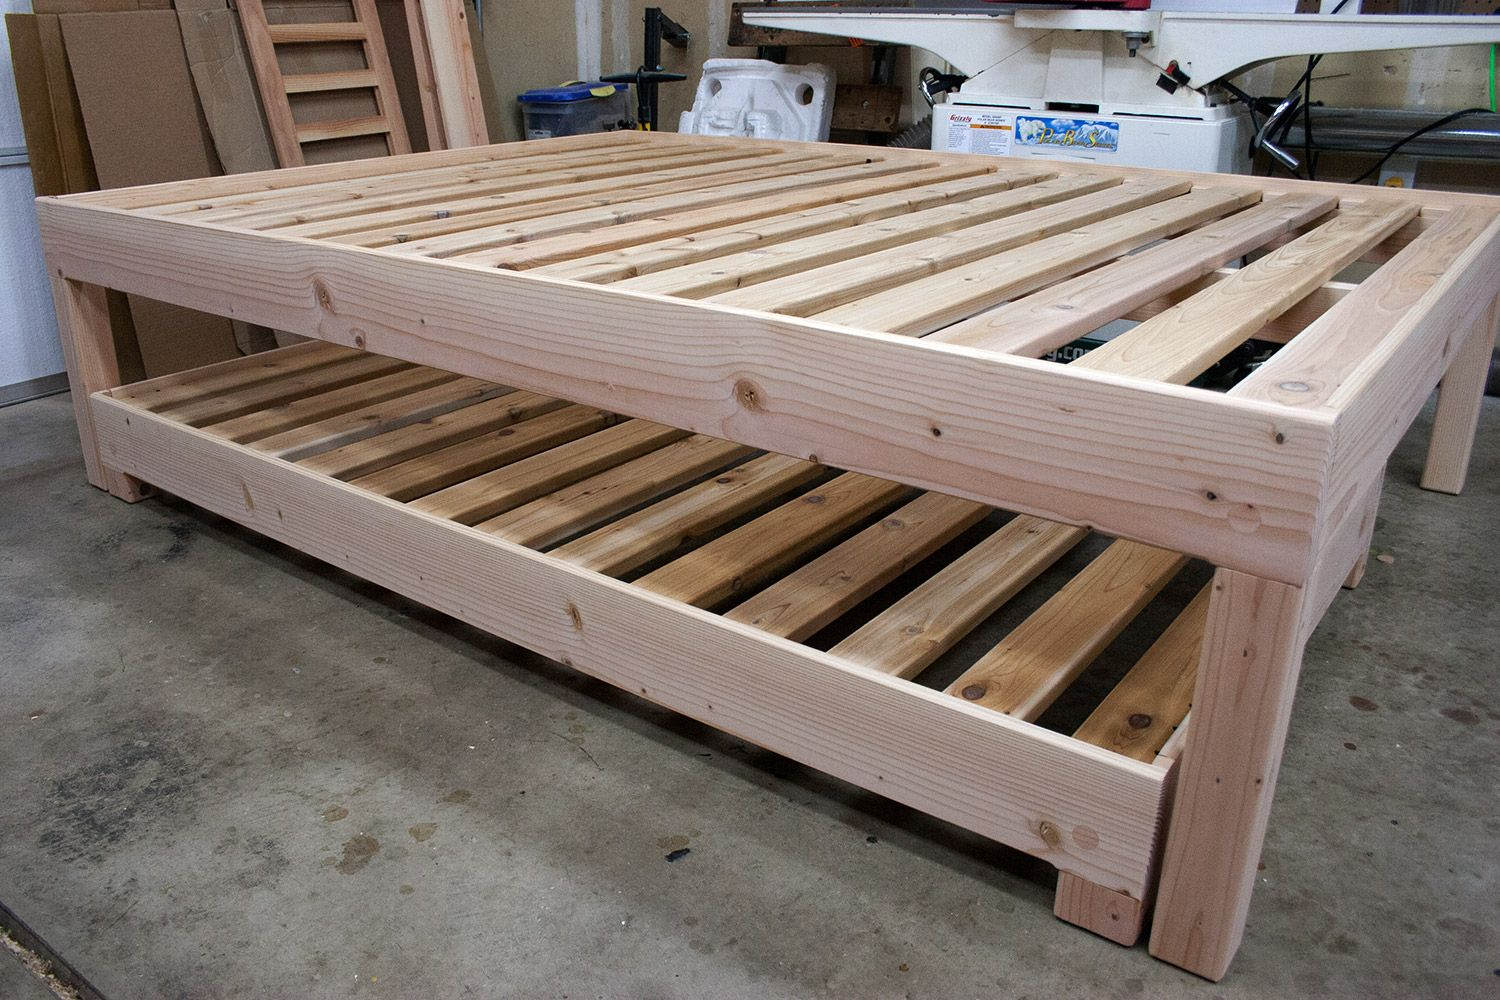 Trundle bed frame - Queen Bed With Trundle Google Search